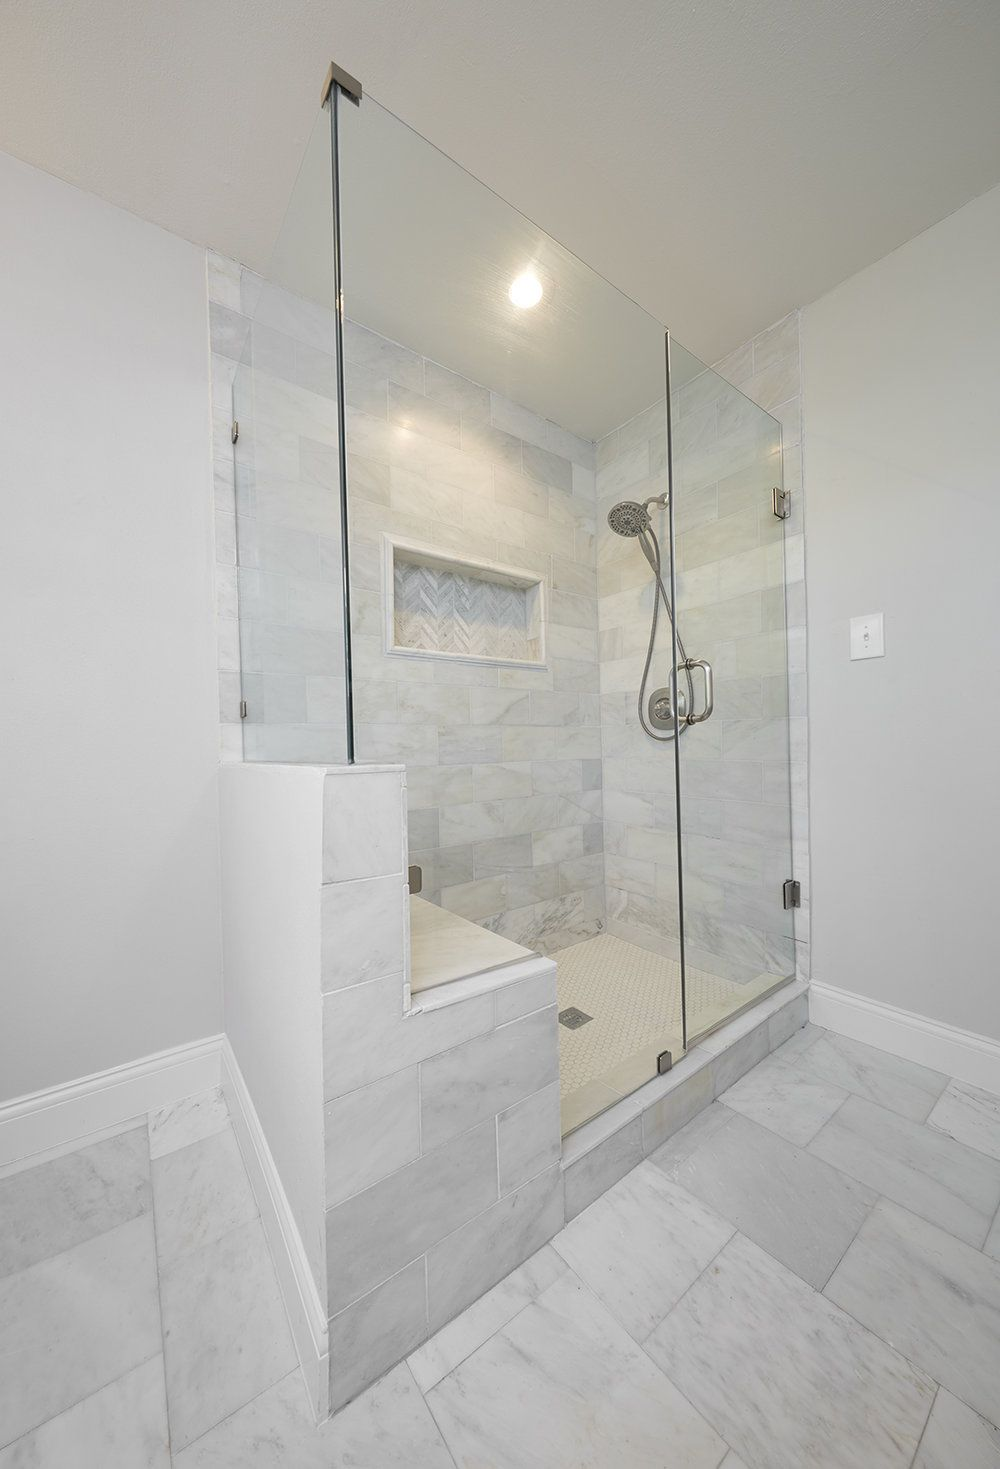 Love This Extra Large White Marble Master Shower With Built In Seat And Frameless Glass Bathroom Remodel Cost Small Bathroom Remodel Bathroom Remodel Shower